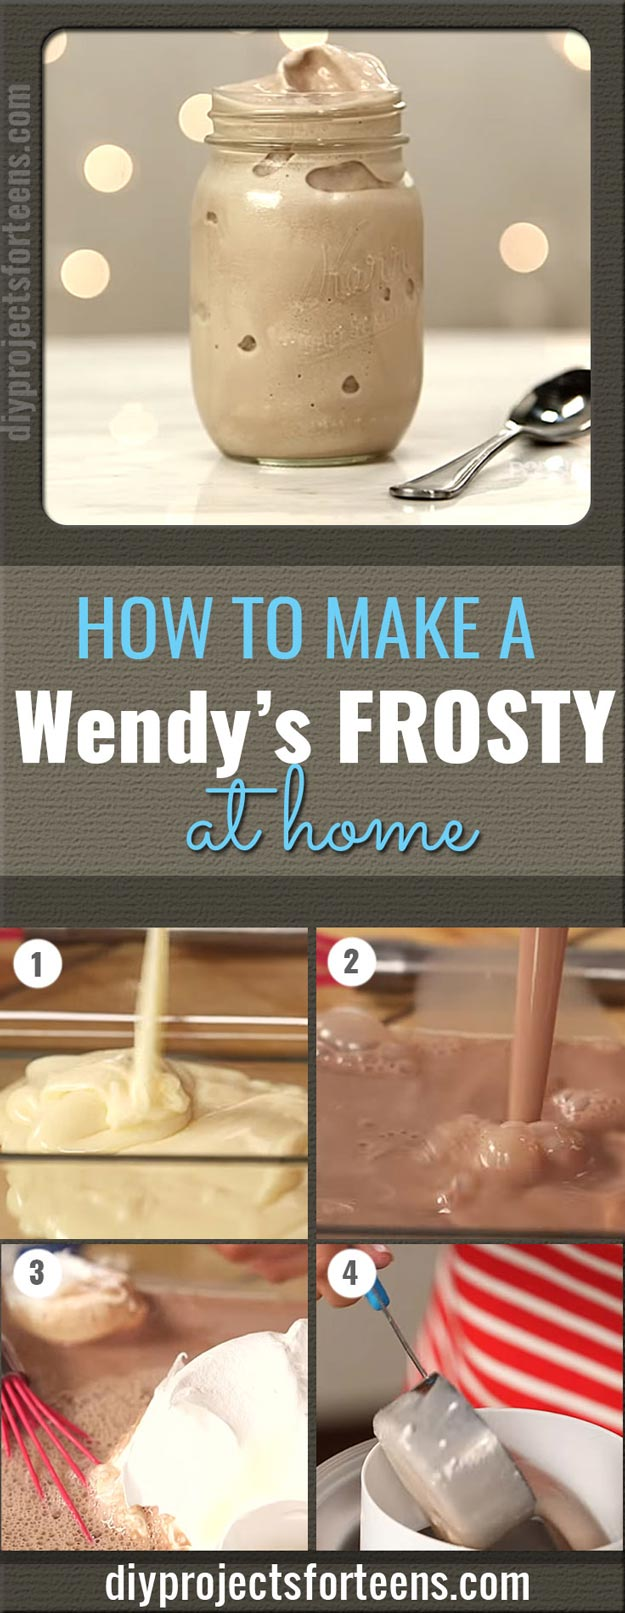 Copycat Recipes From Top Restaurants. Best Recipe Knockoffs from Chipotle, Starbucks, Olive Garden, Cinabbon, Cracker Barrel, Taco Bell, Cheesecake Factory, KFC, Mc Donalds, Red Lobster, Panda Express   Make A Wendy's Frosty At Home With Only 3 Ingredients   http://diyjoy.com/copycat-recipes